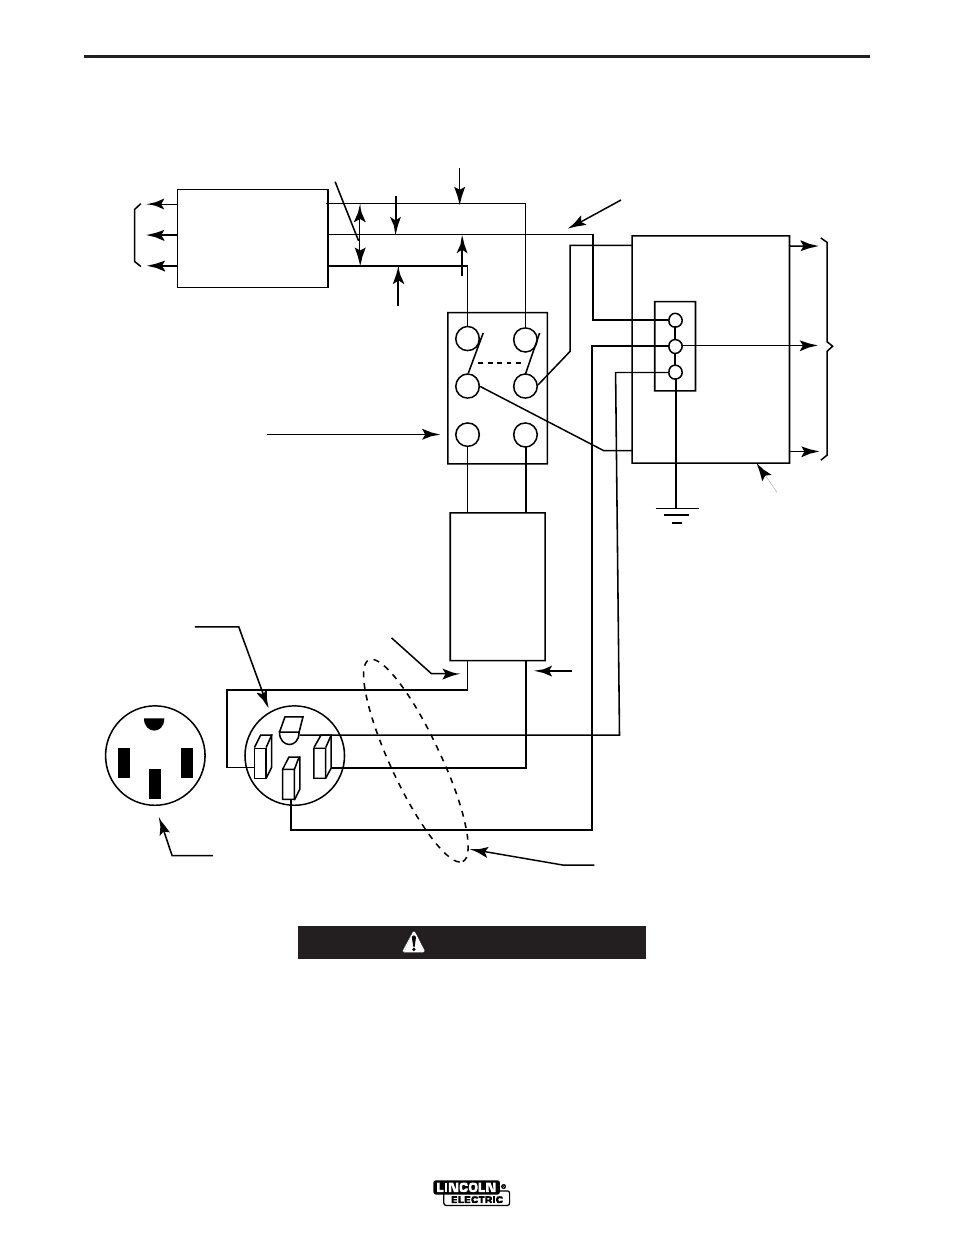 hight resolution of installation figure 1 warning lincoln electric im925 ranger 10 000 plus user manual page 16 37